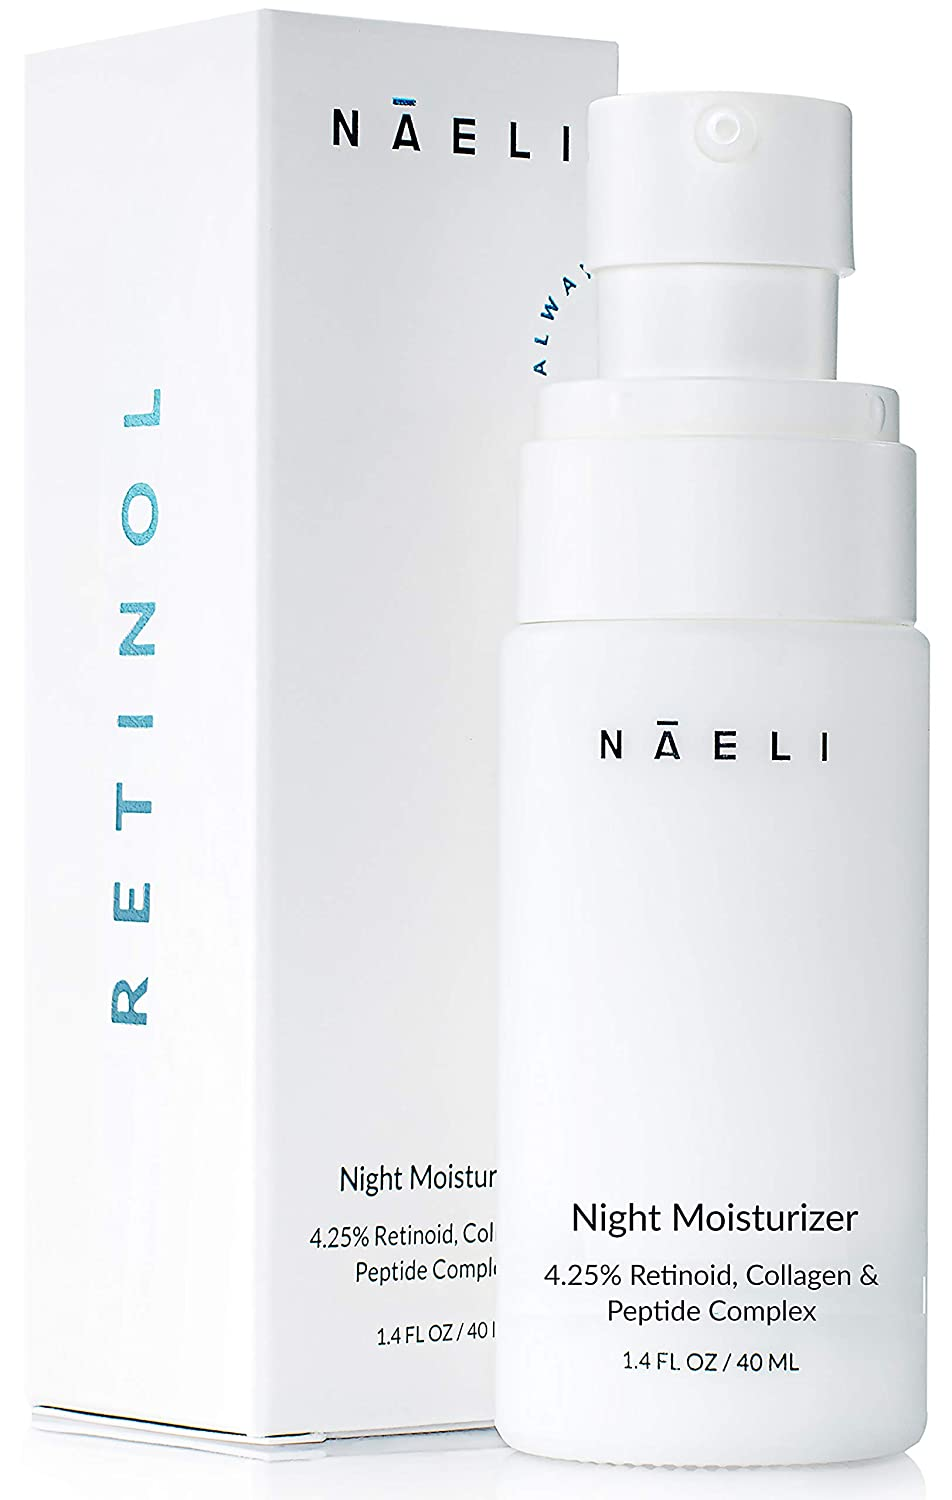 Retinol Cream For Face - 4.25% Retinol Night Moisturizer with Collagen & Peptides - Anti Aging Complex For Wrinkles, Fine Lines & Skin Tone. Boosts Natural Collagen Production - Skincare For Women & Men, 1.4 oz.